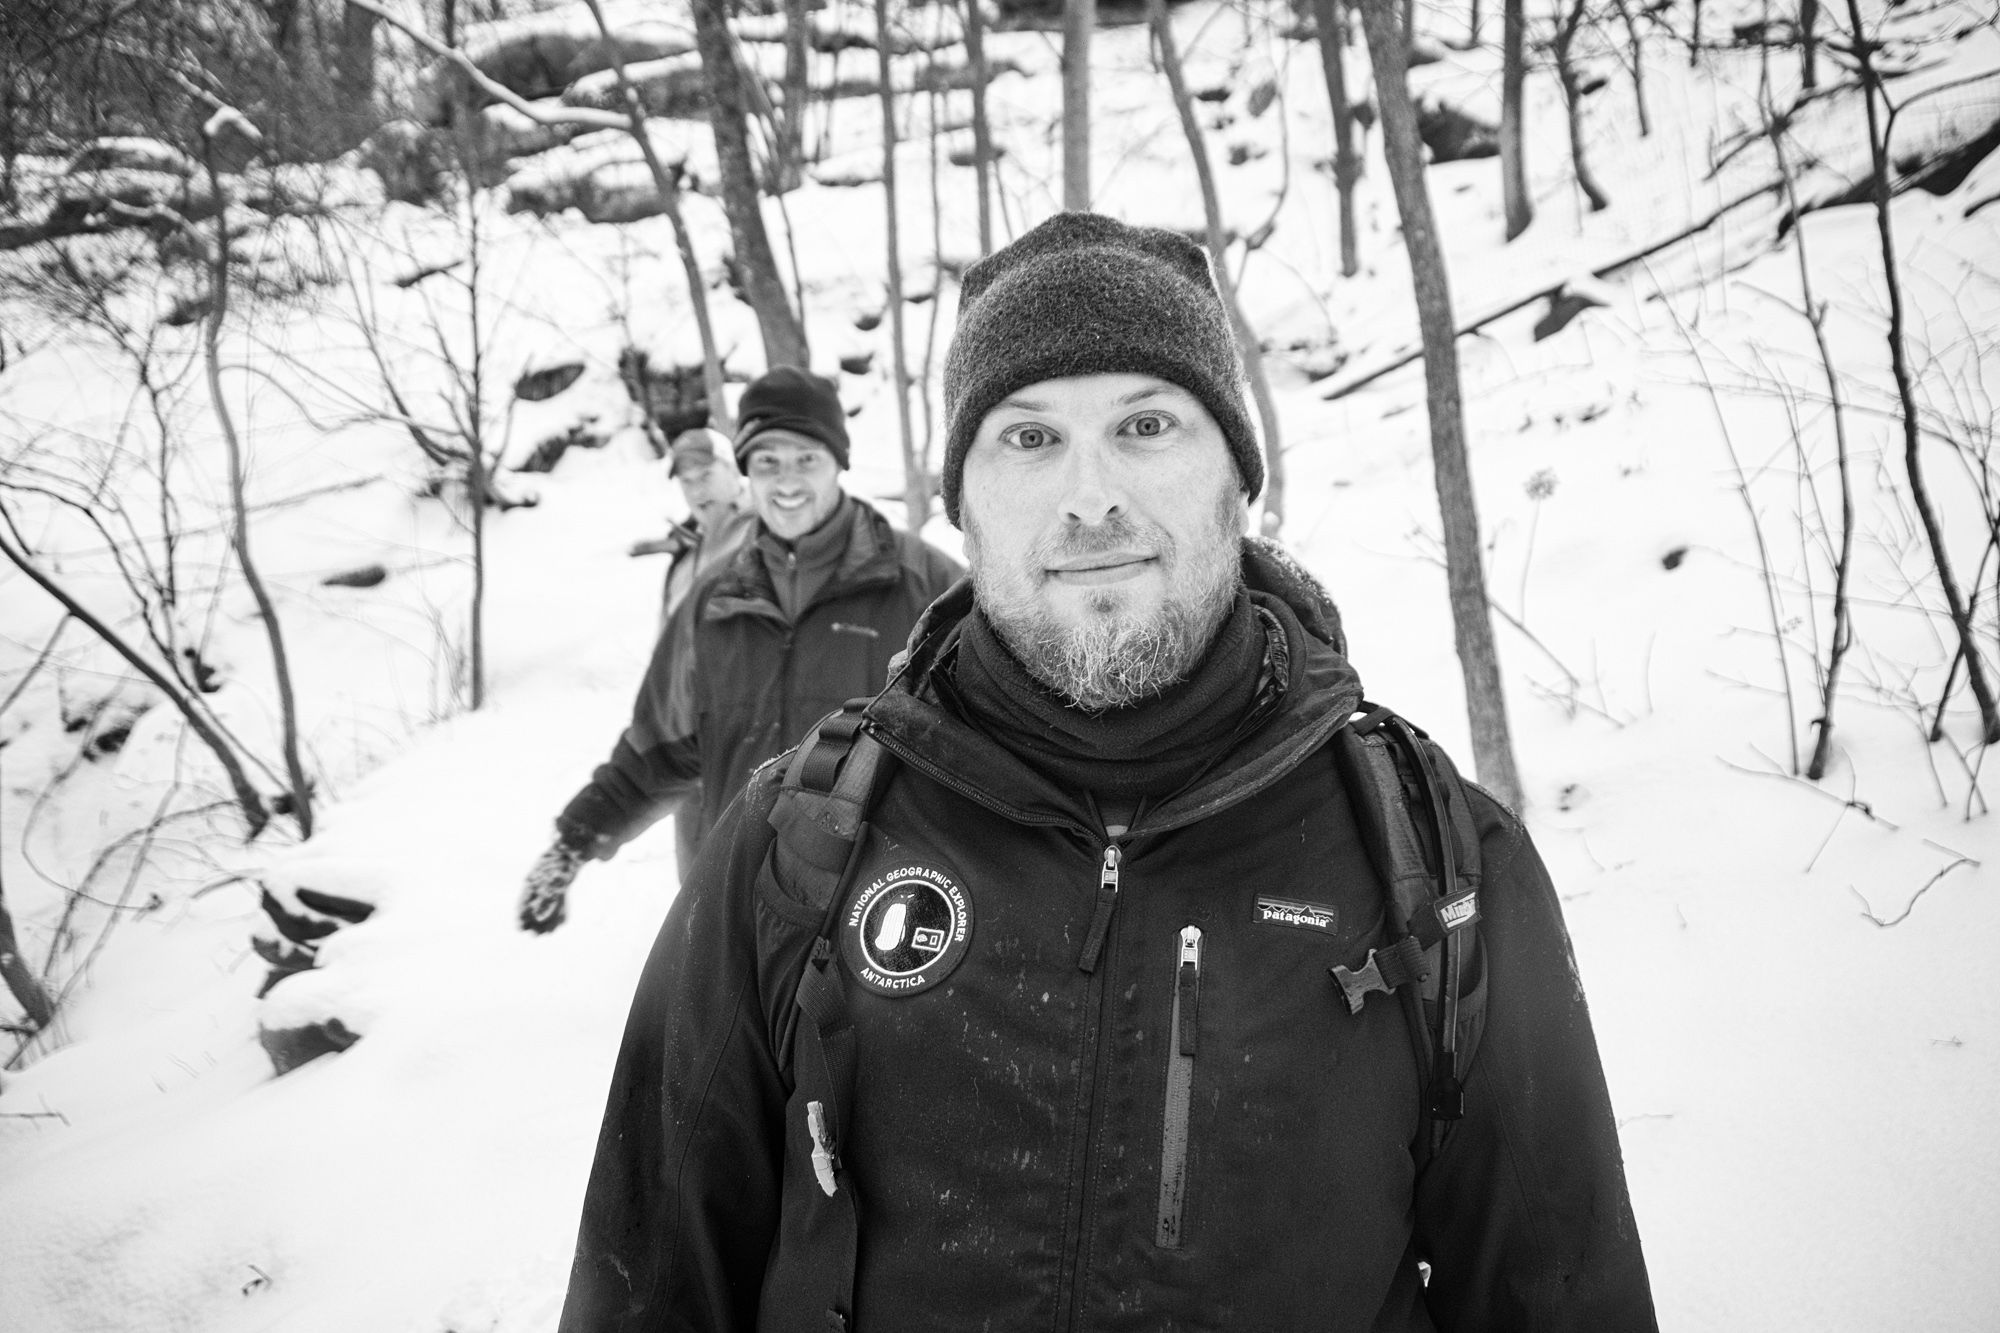 Good friends Scott and Keith, from Nat Geo, came out to hike in the winter with us. Thanks guys! On to the next park....